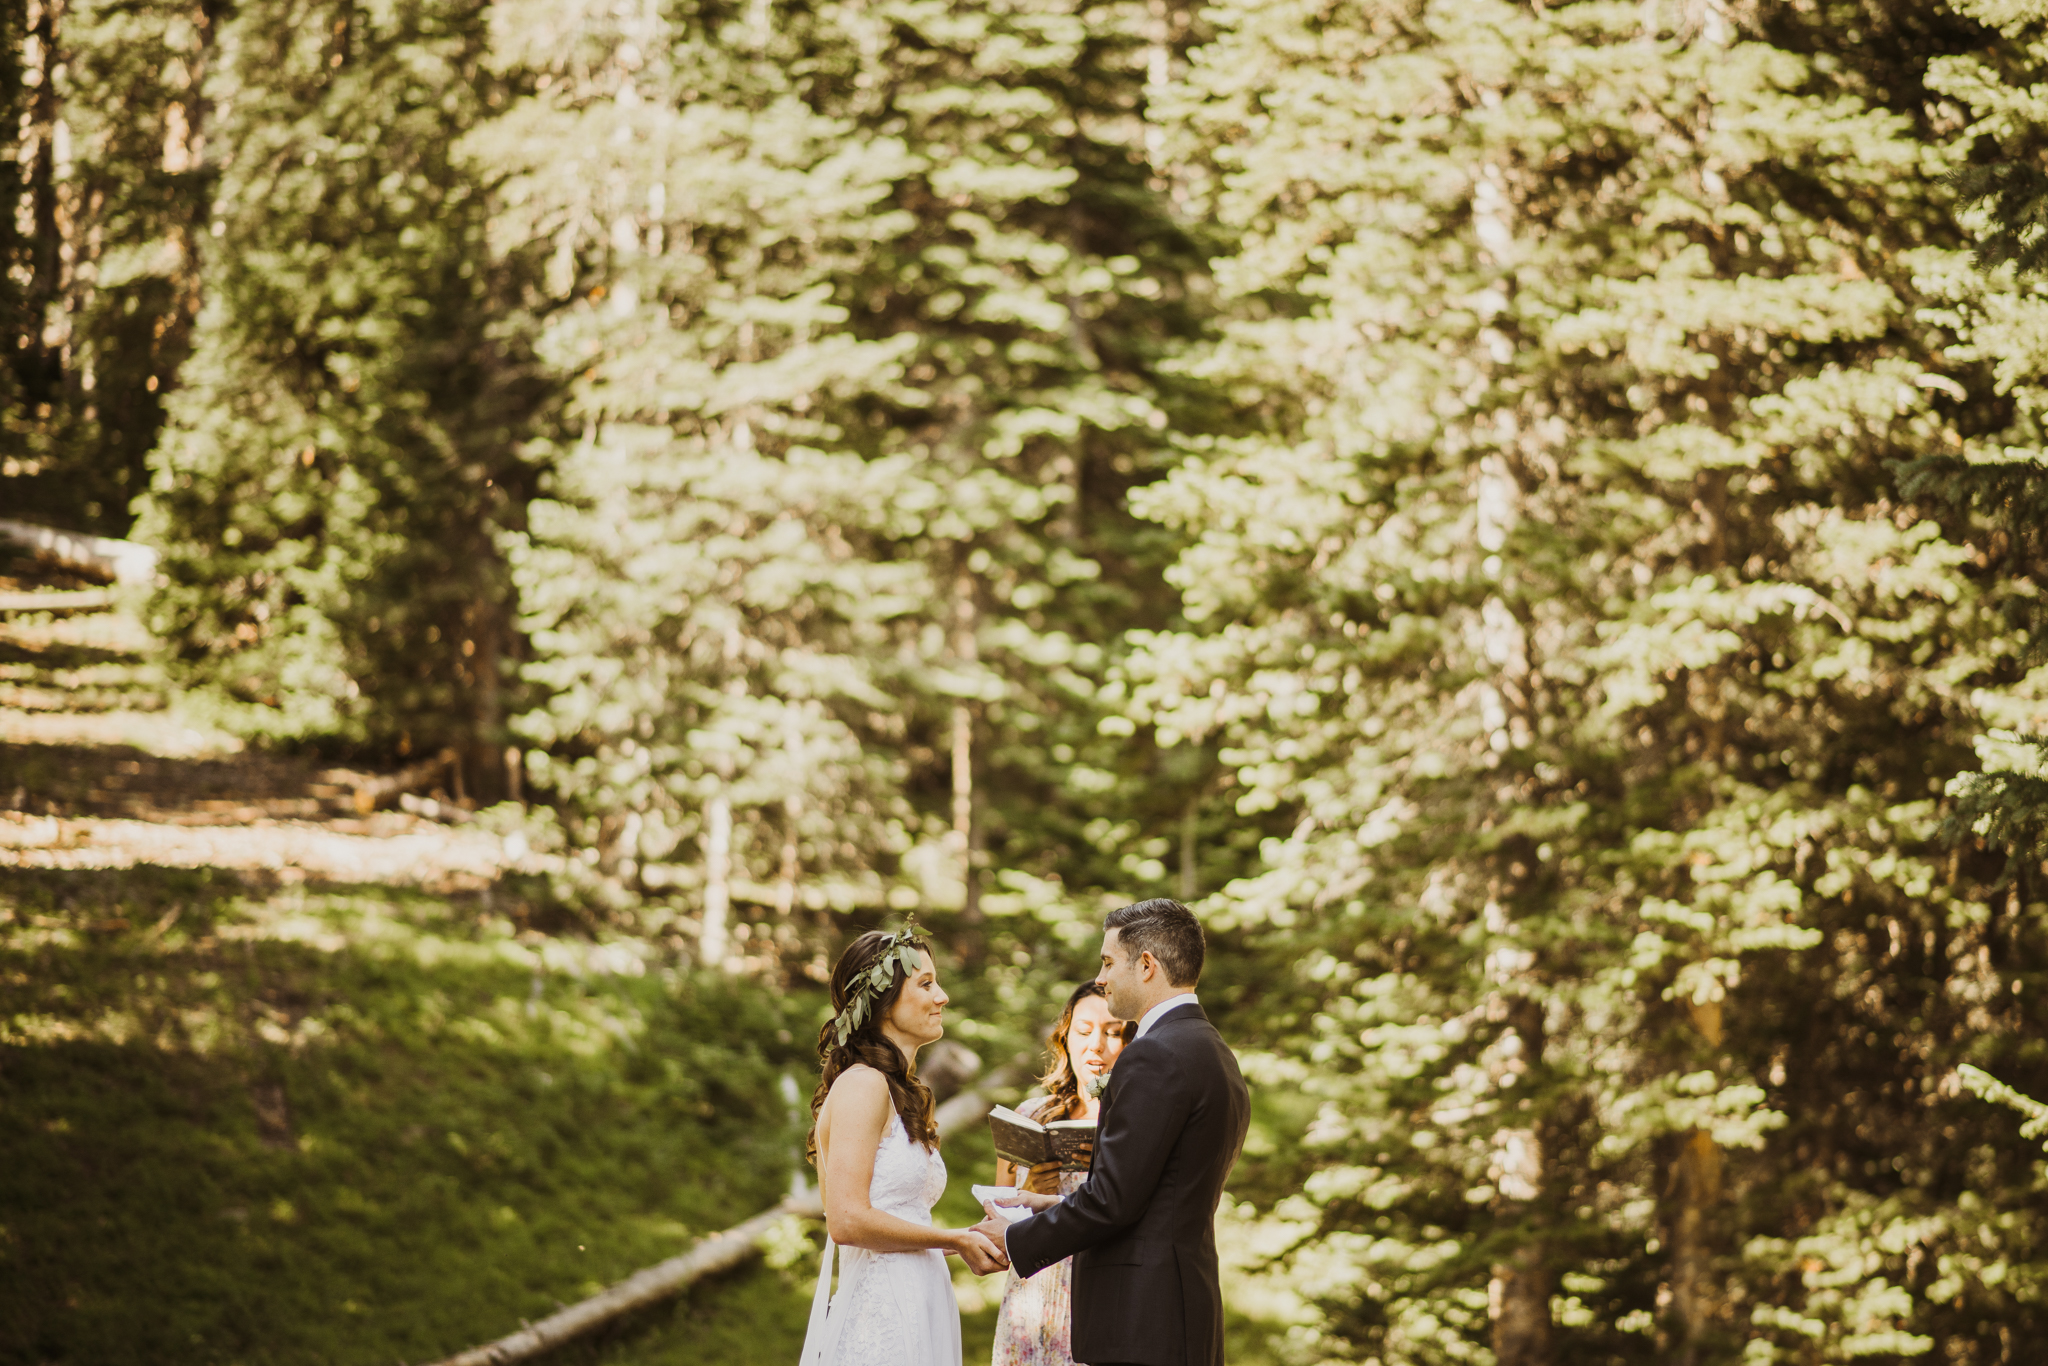 ©Isaiah + Taylor Photography - Estes National Park Adventure Elopement, Colorado Rockies-28.jpg